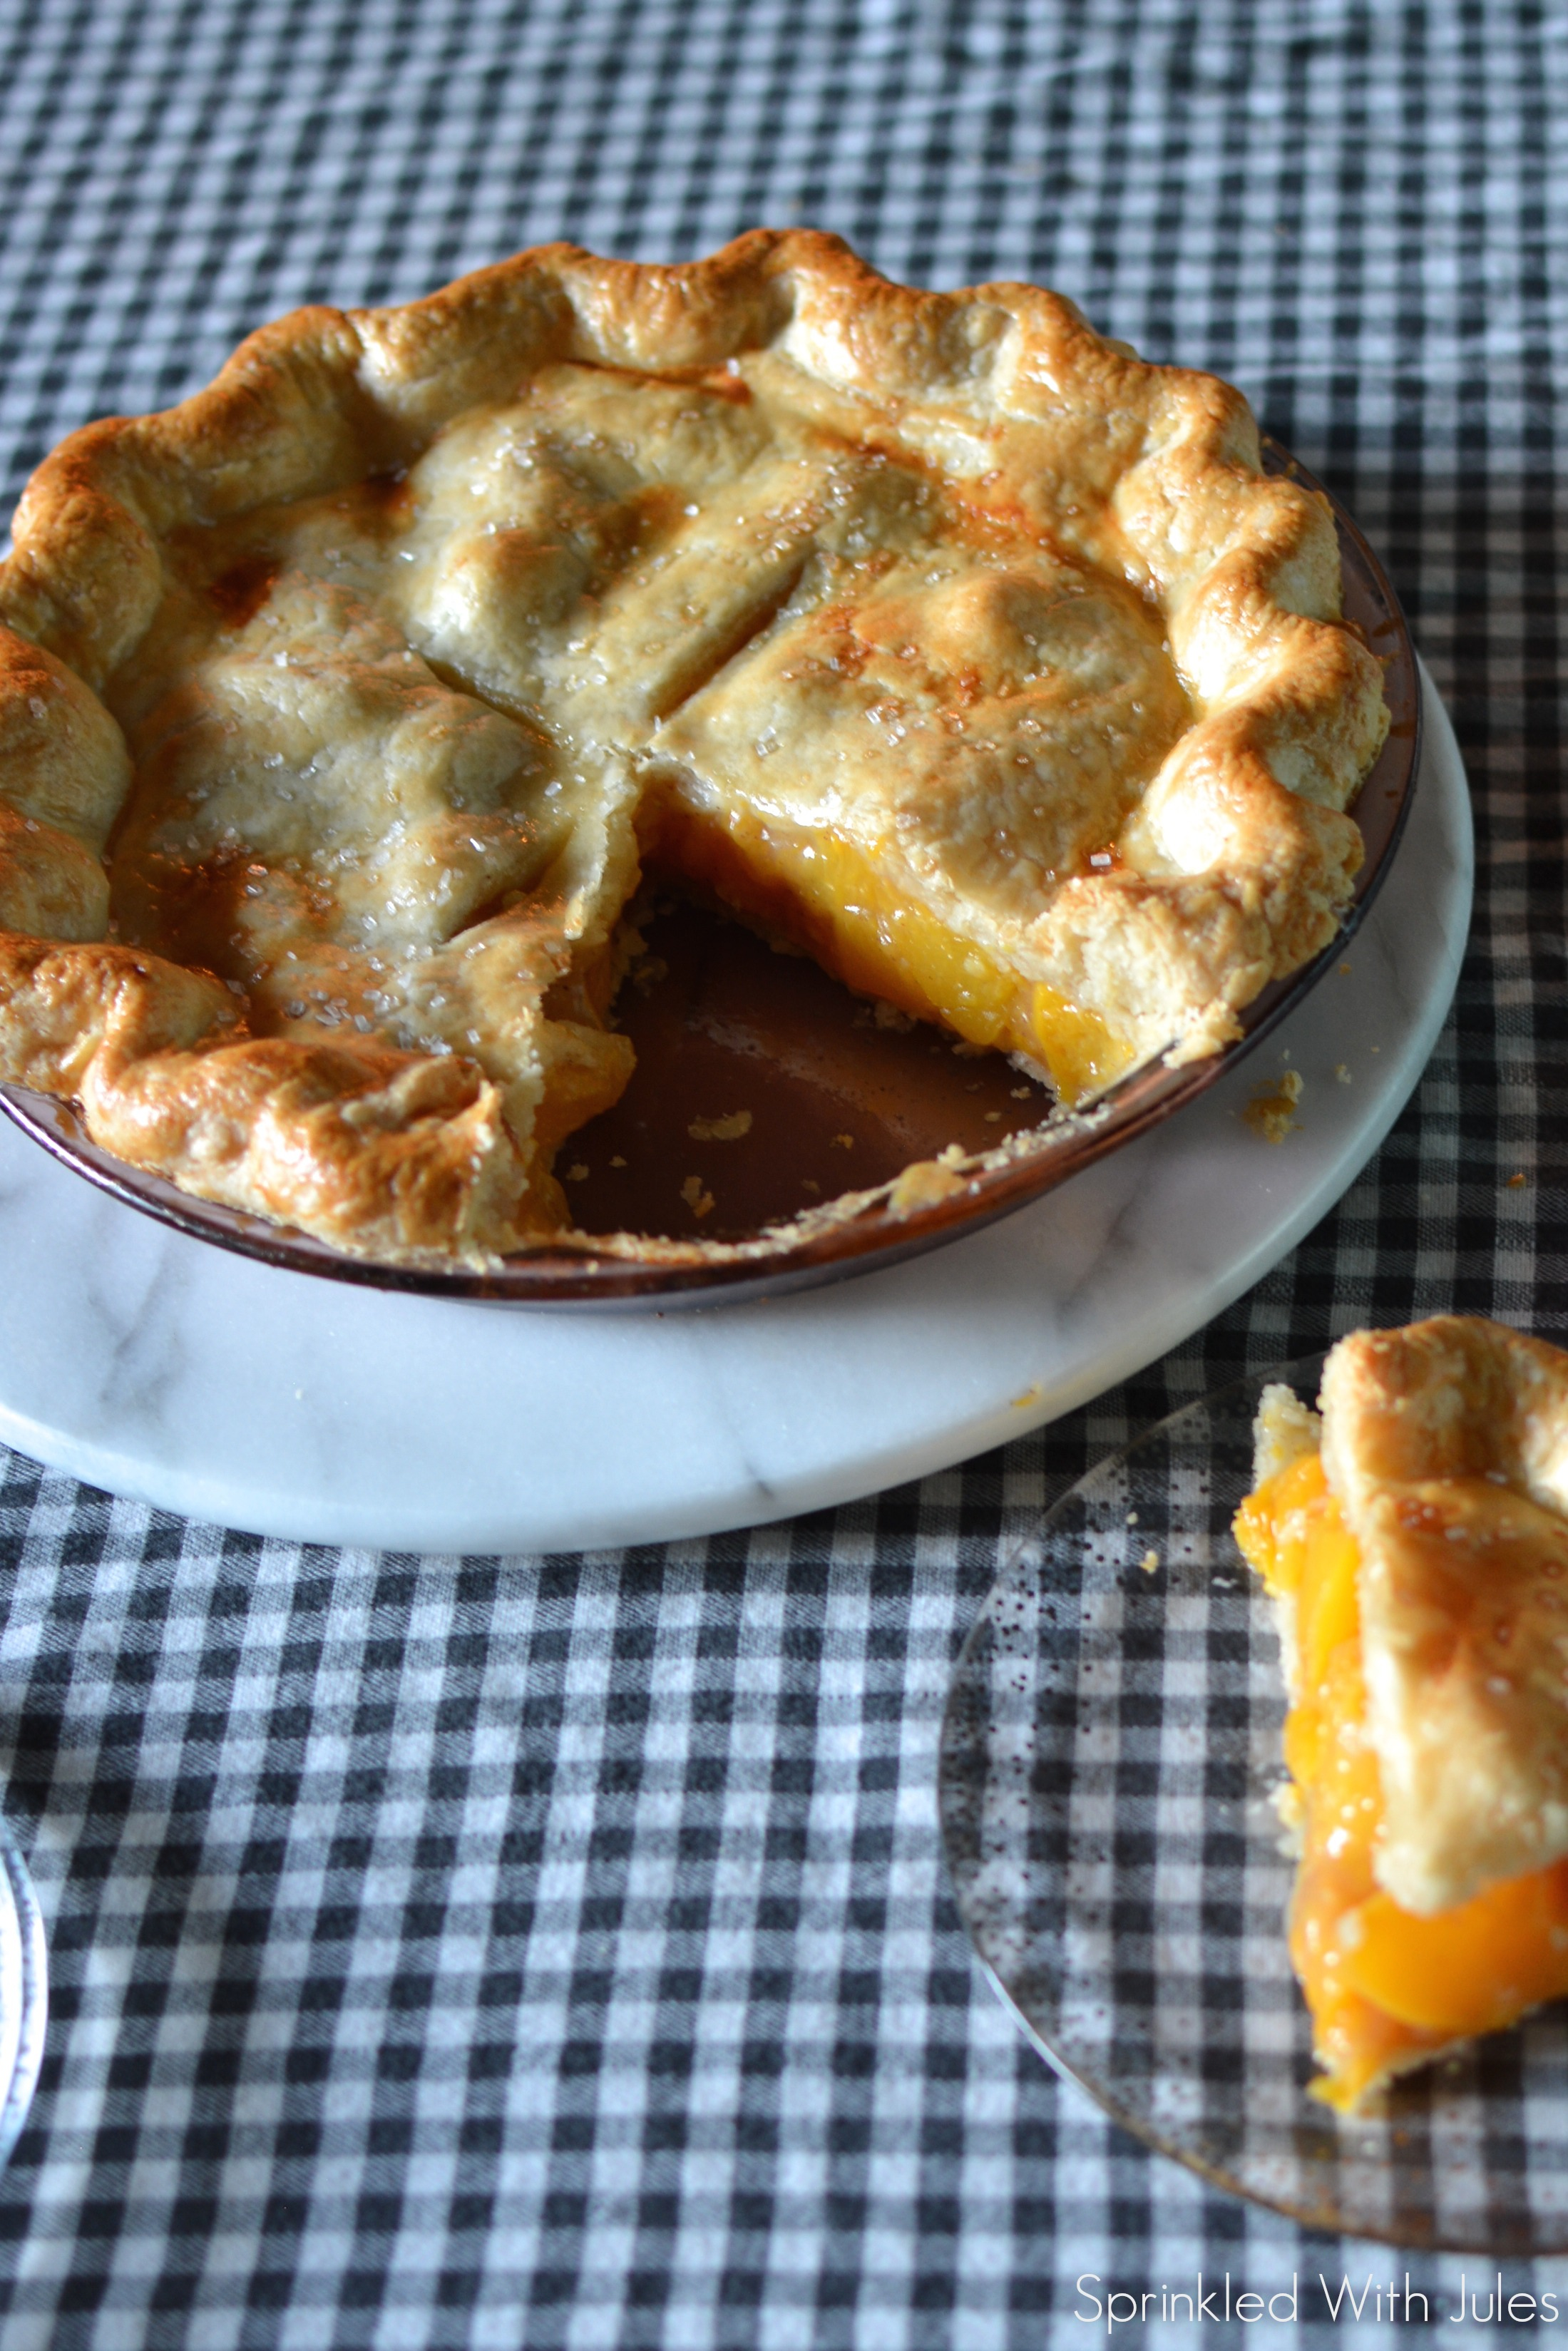 Ginger Peach Pie / Sprinkled With Jules